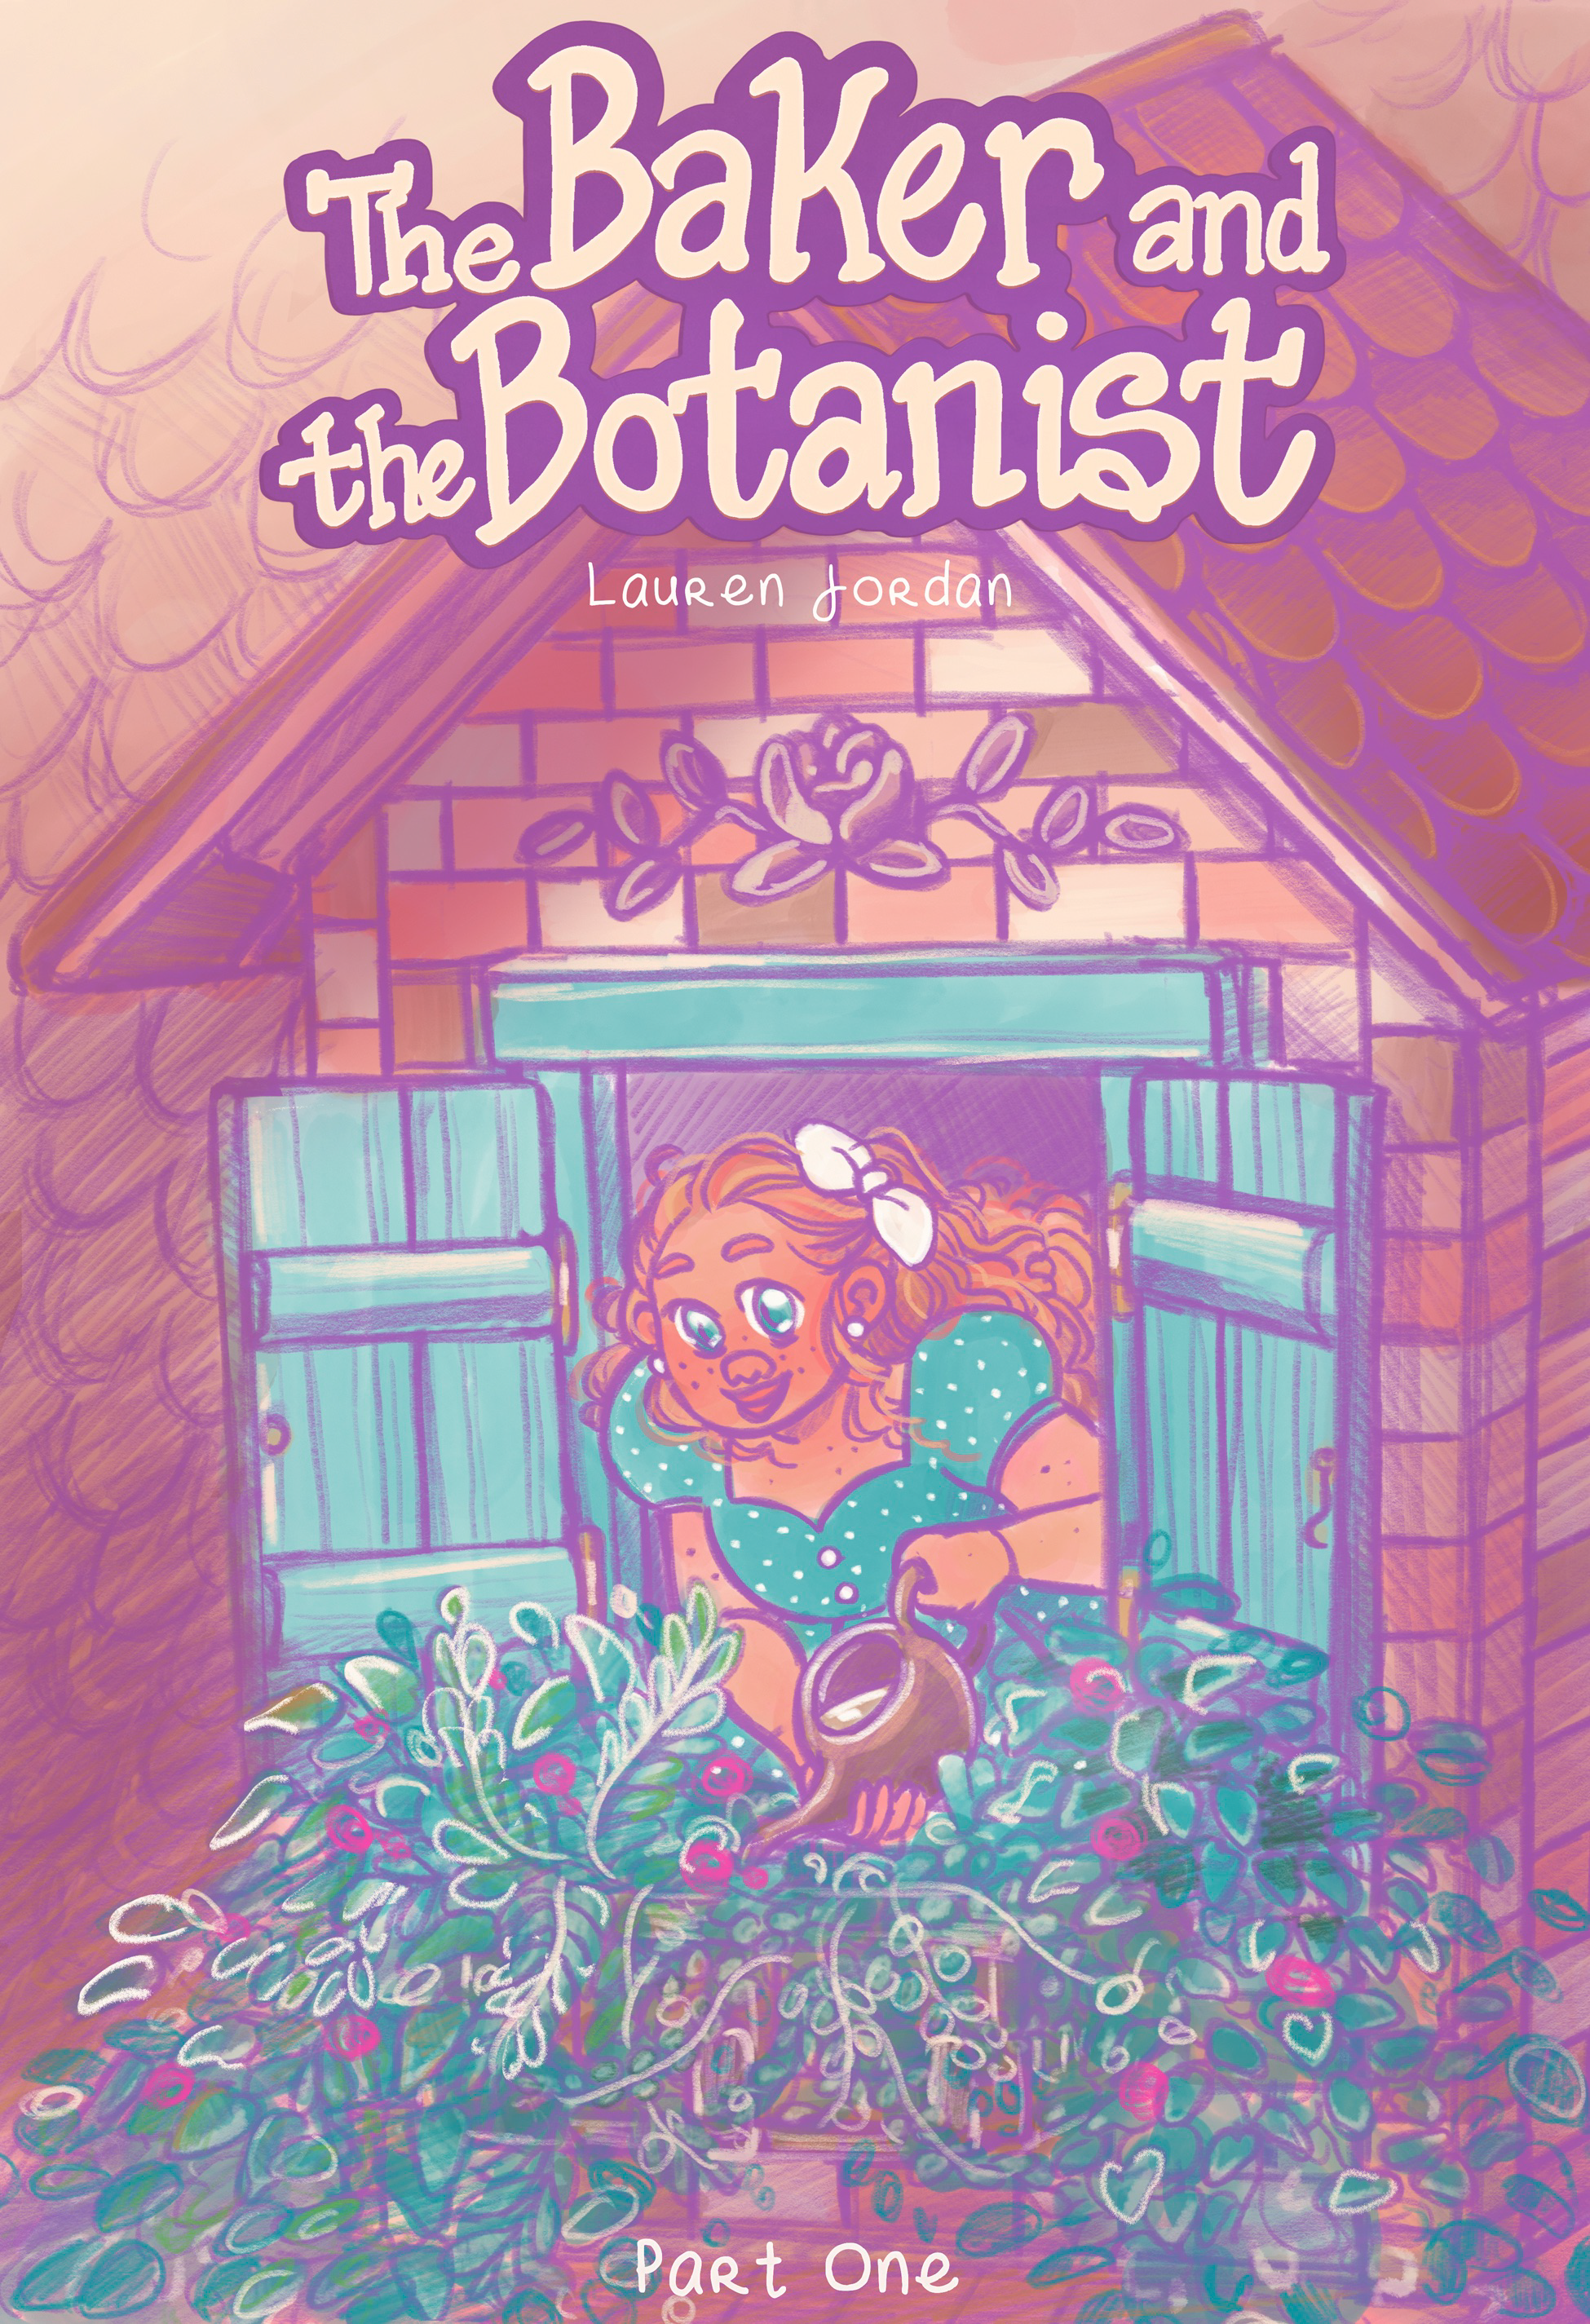 The+Baker+and+the+Botanist+-+Part+One_Page_01.png